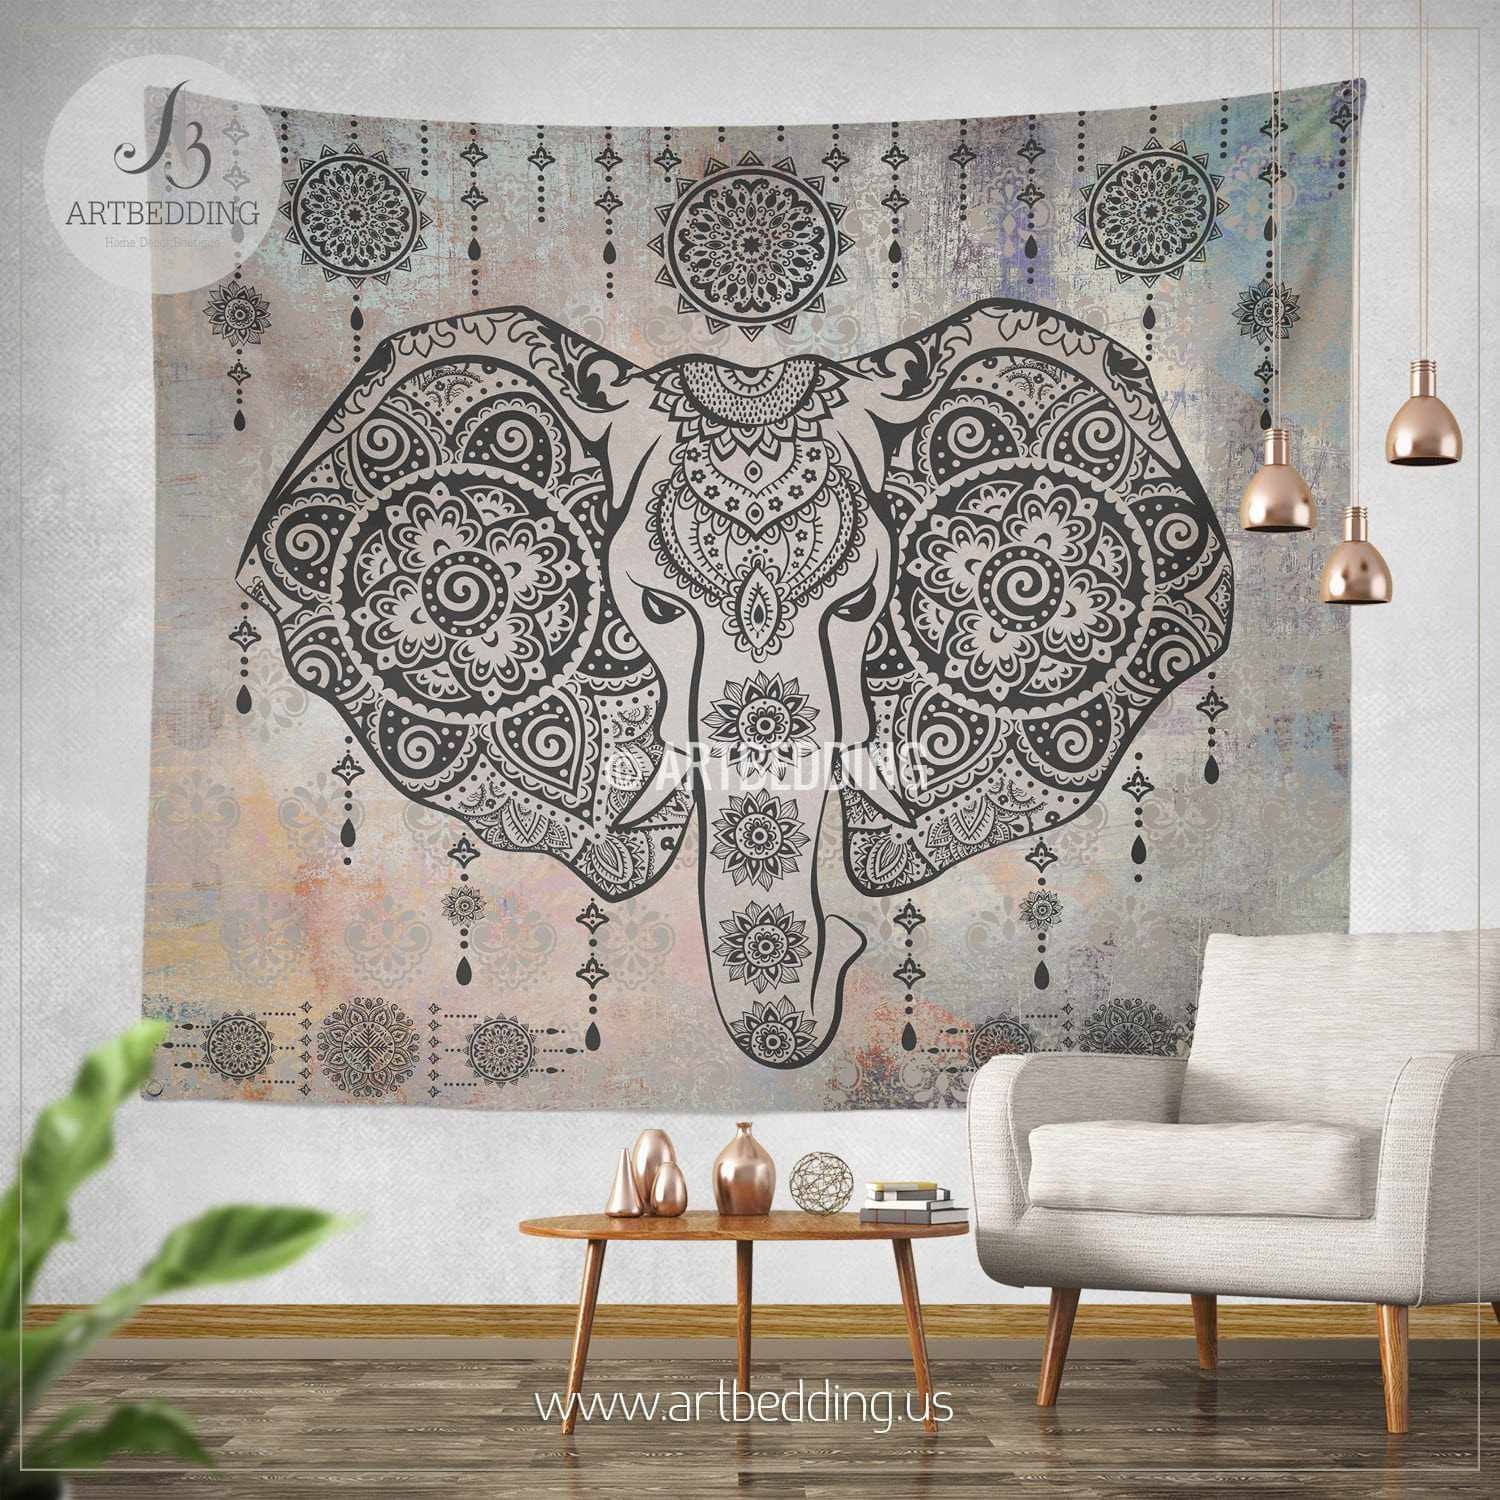 How To Hang A Tapestry On The Wall elephant tapestry, elephant wall tapestry, indie tapestry wall